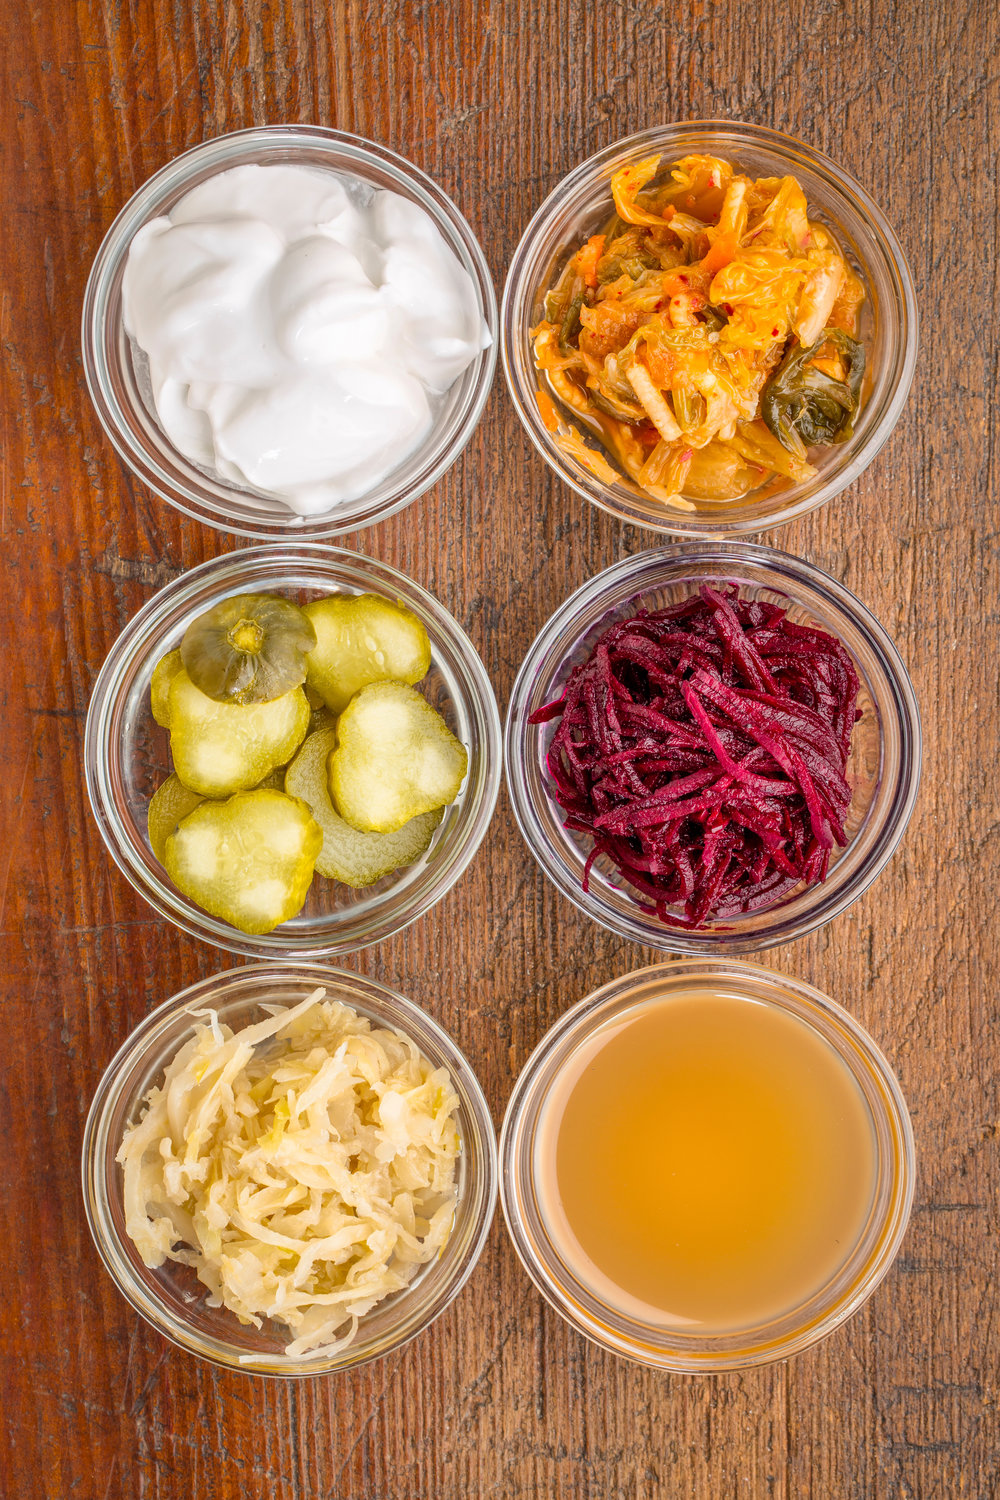 a set of fermented food great for gut health - top view of glass